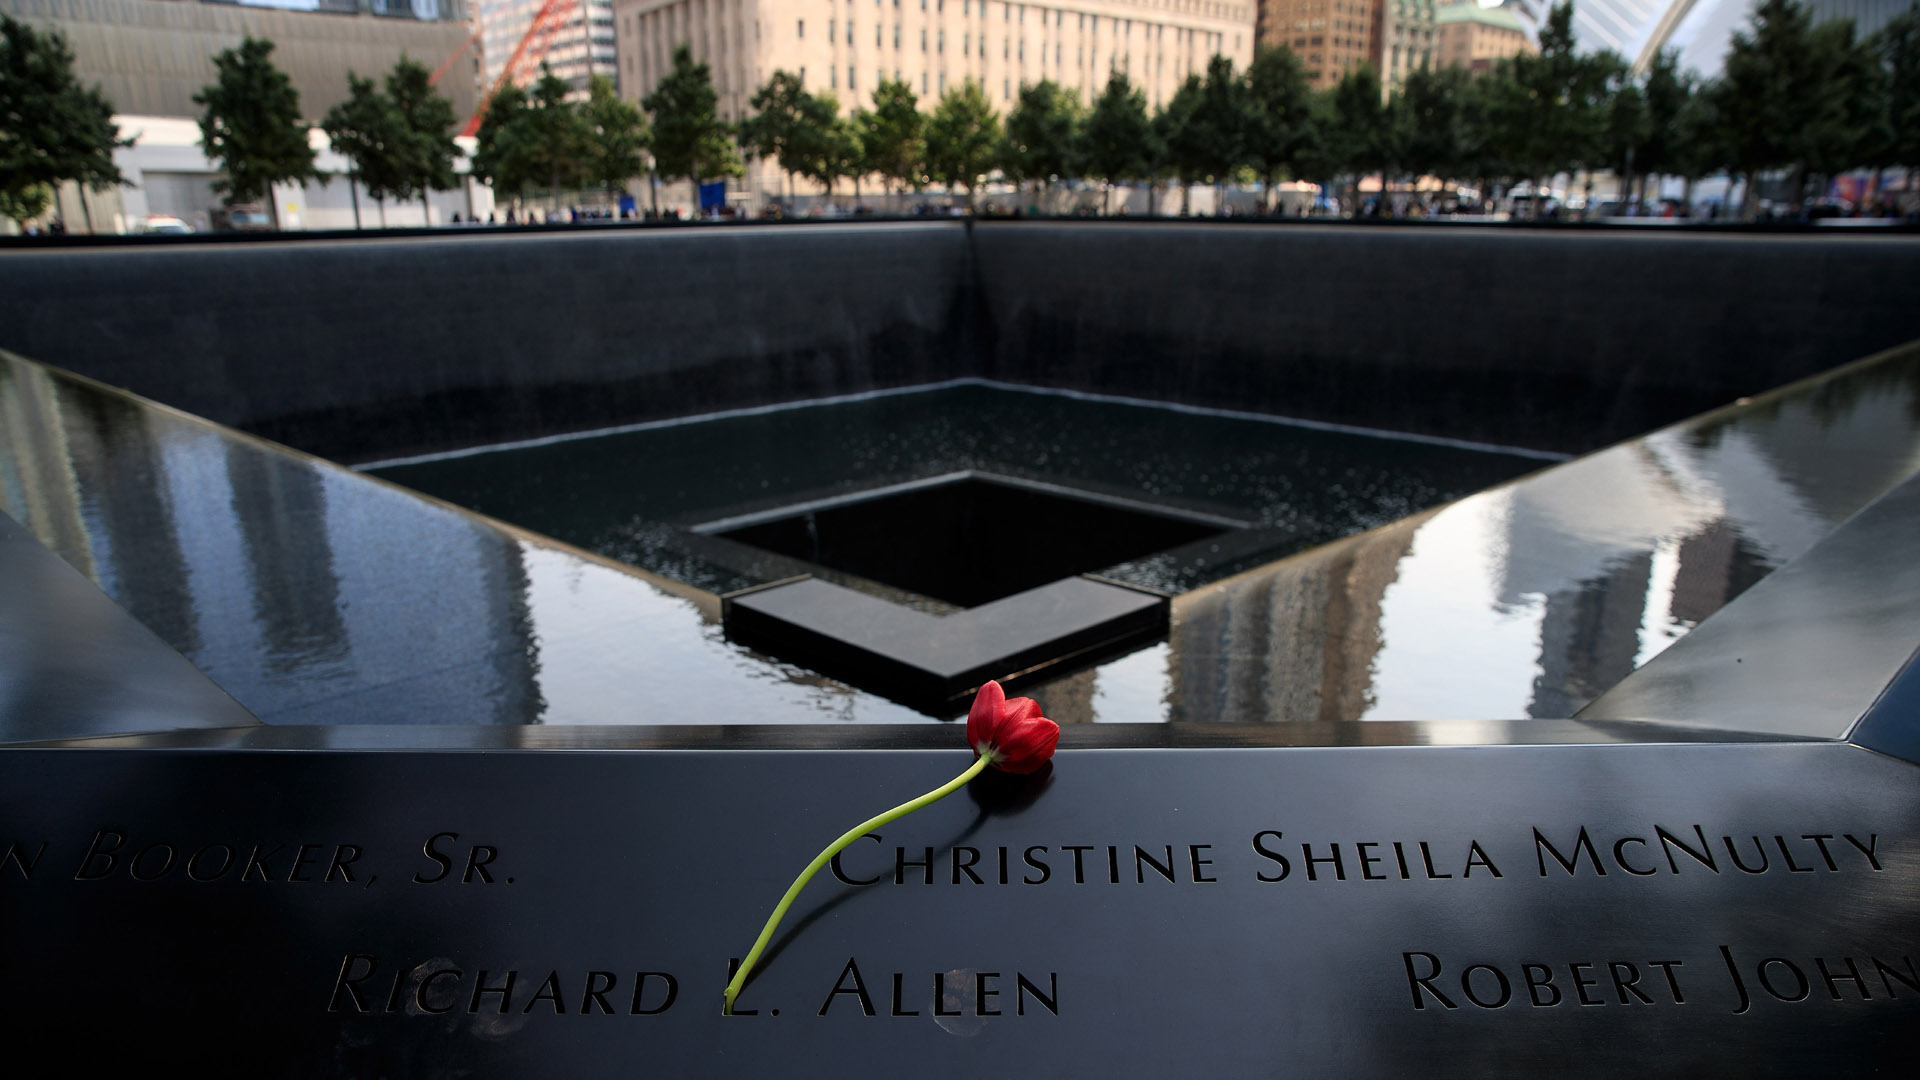 september 11 memorial in new york city73213114-159532